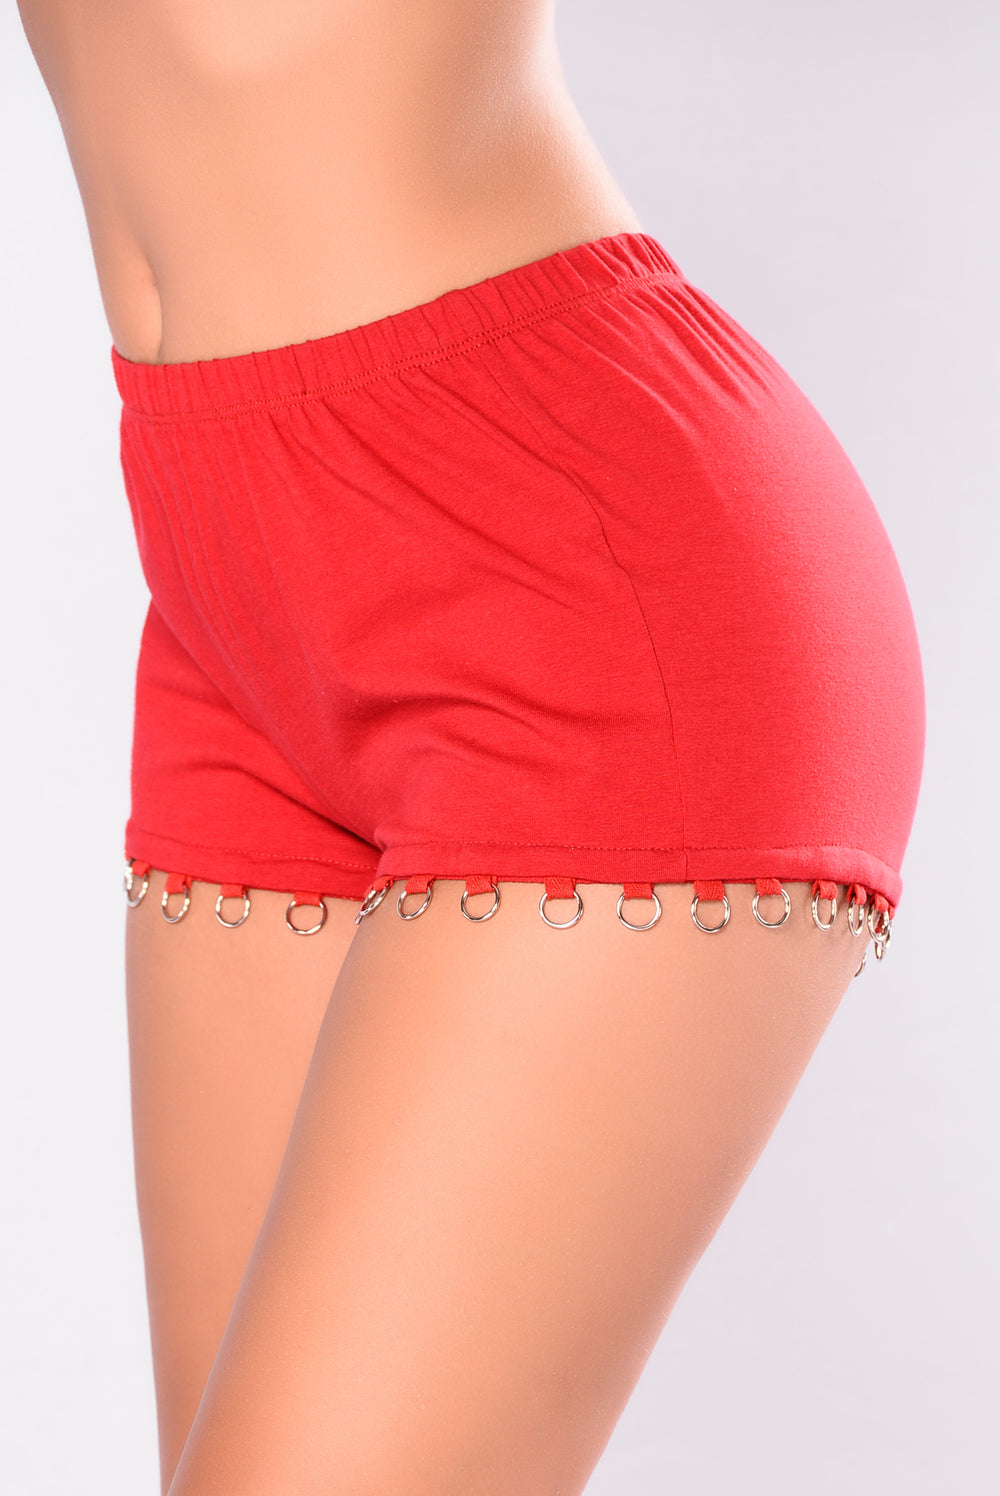 All Of Us Shorts - Red